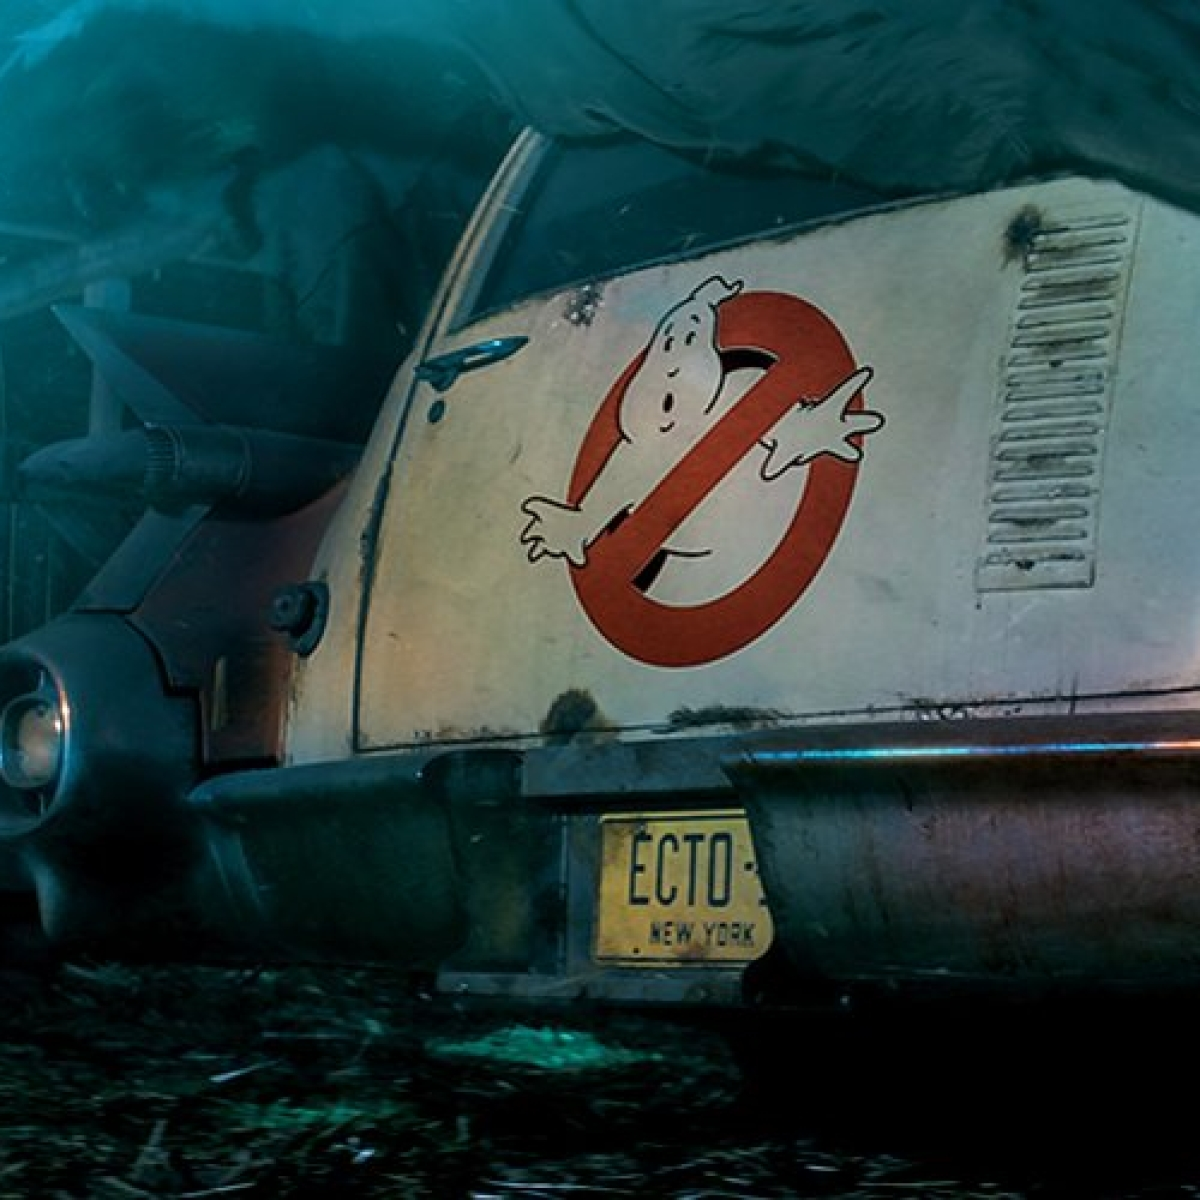 Afterlife: Jason Reitman's 'Ghostbusters' gets a title